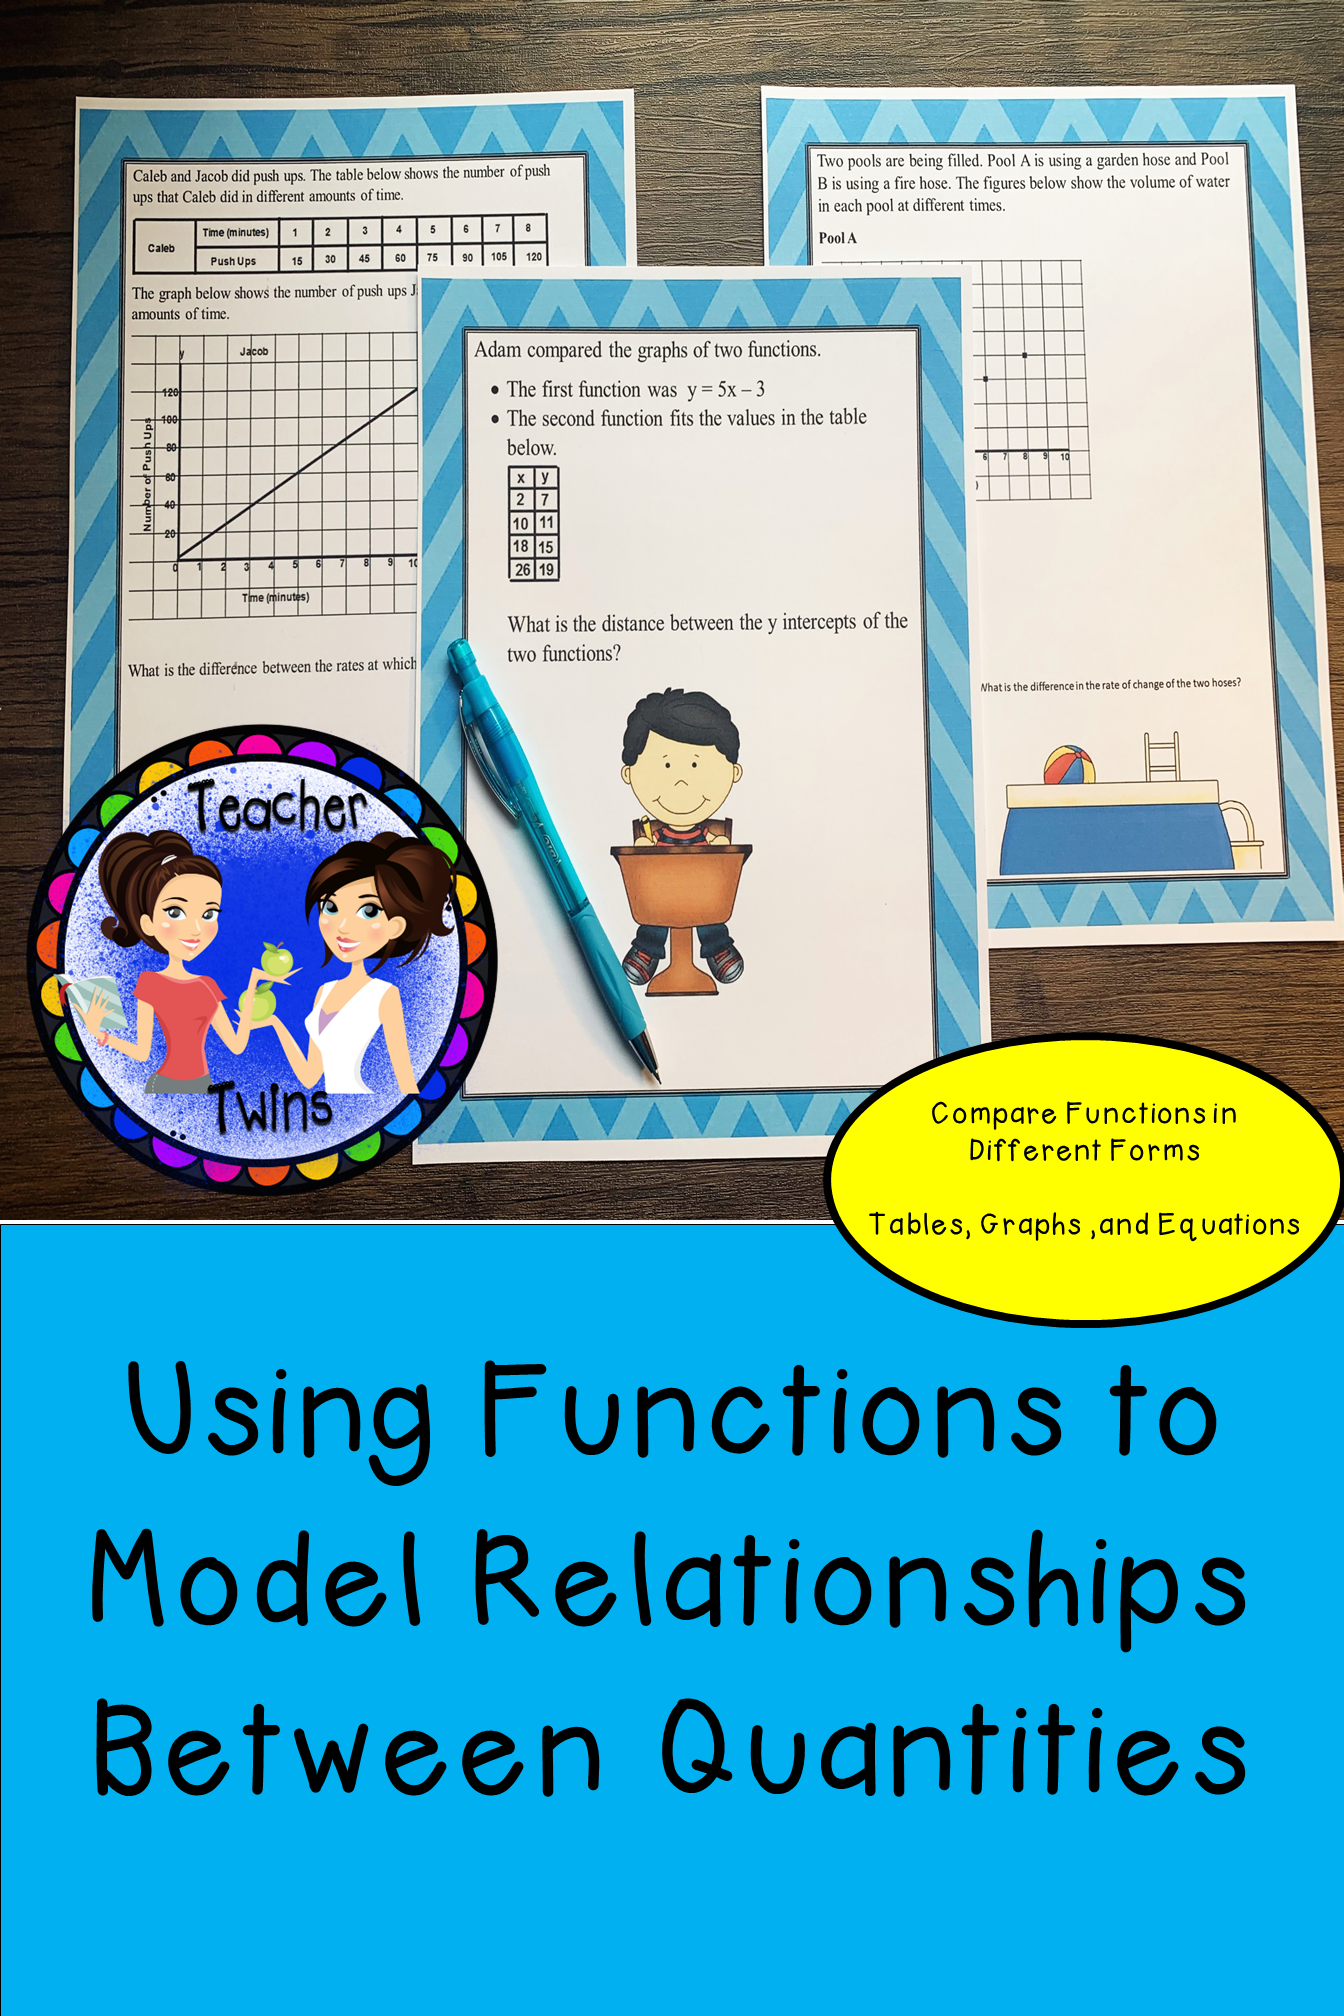 Using Functions To Model Relationships Between Quantities